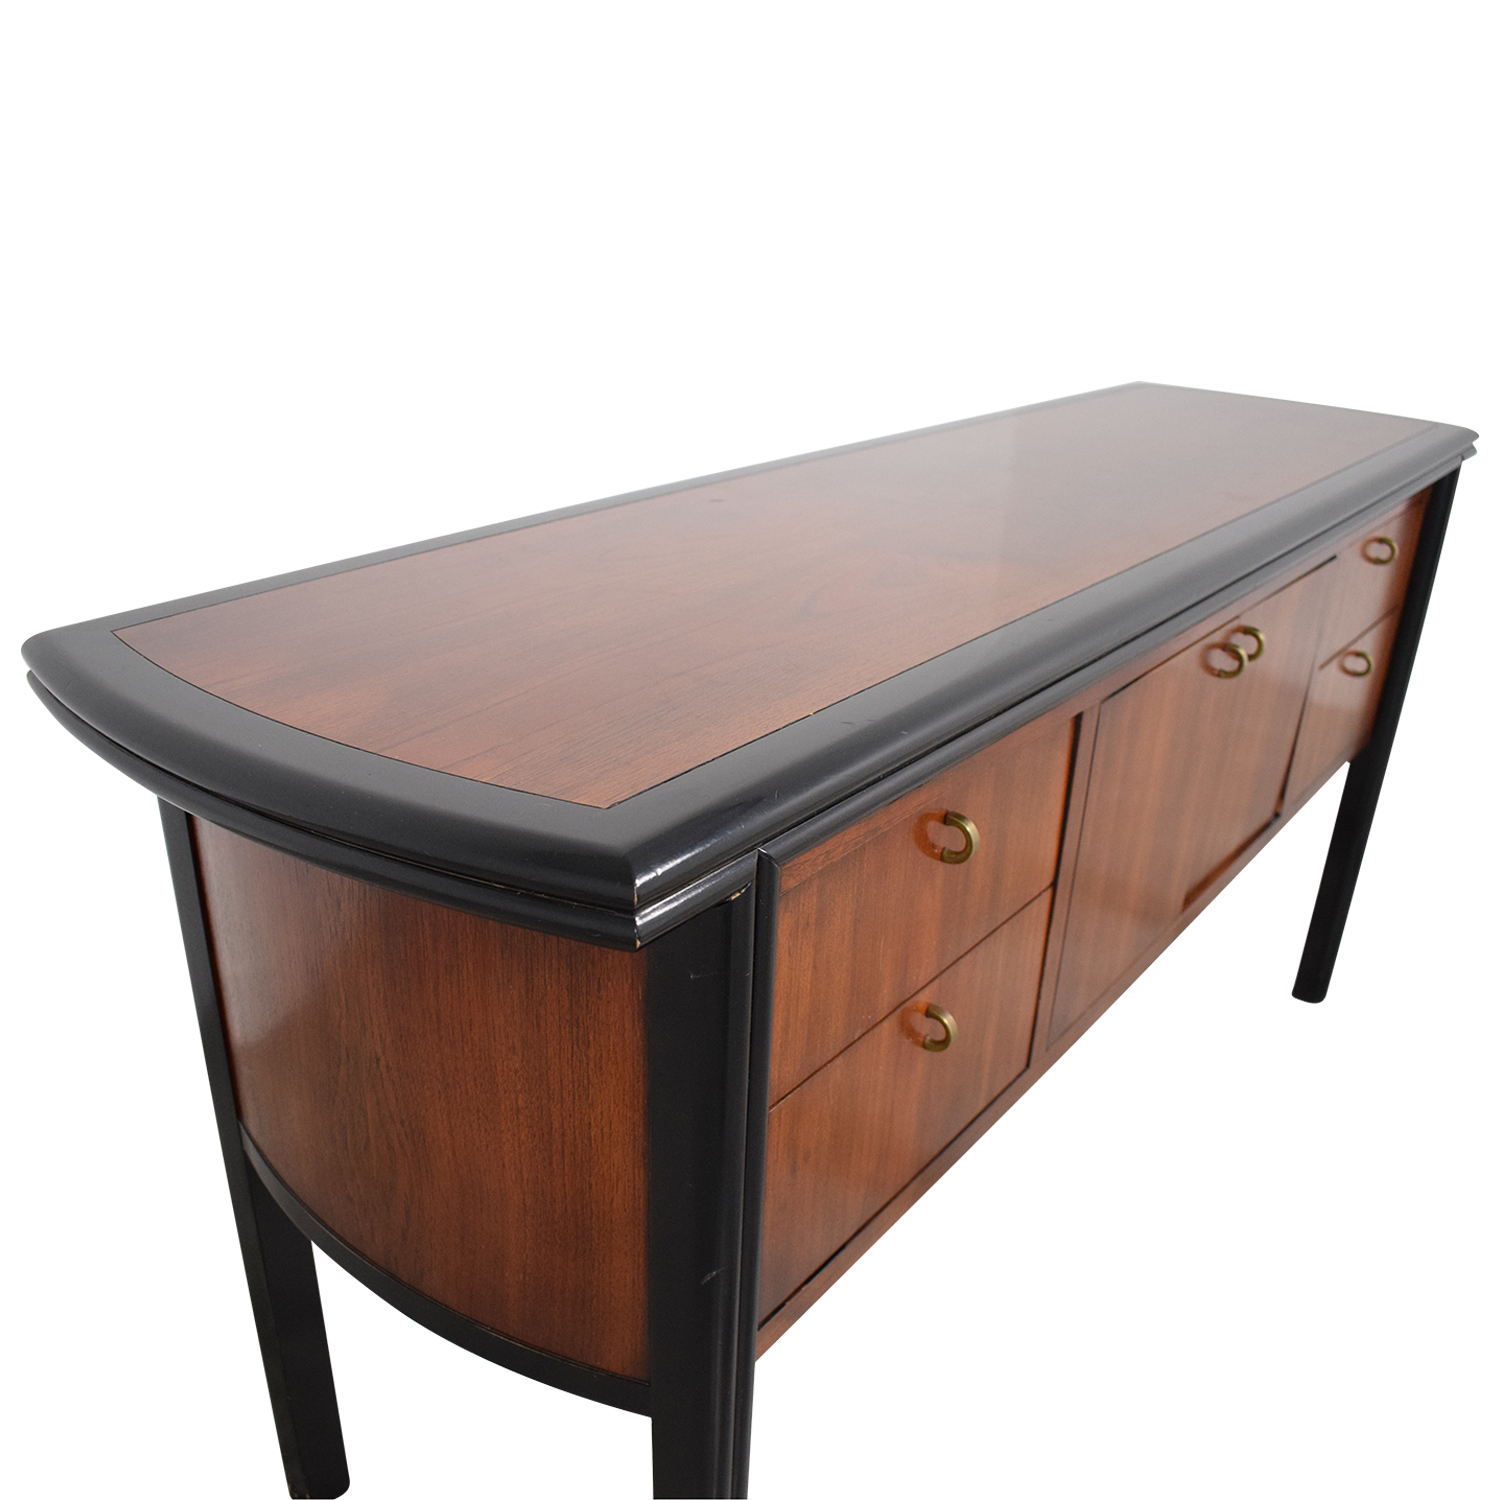 Century Buffet Table / Cabinets & Sideboards